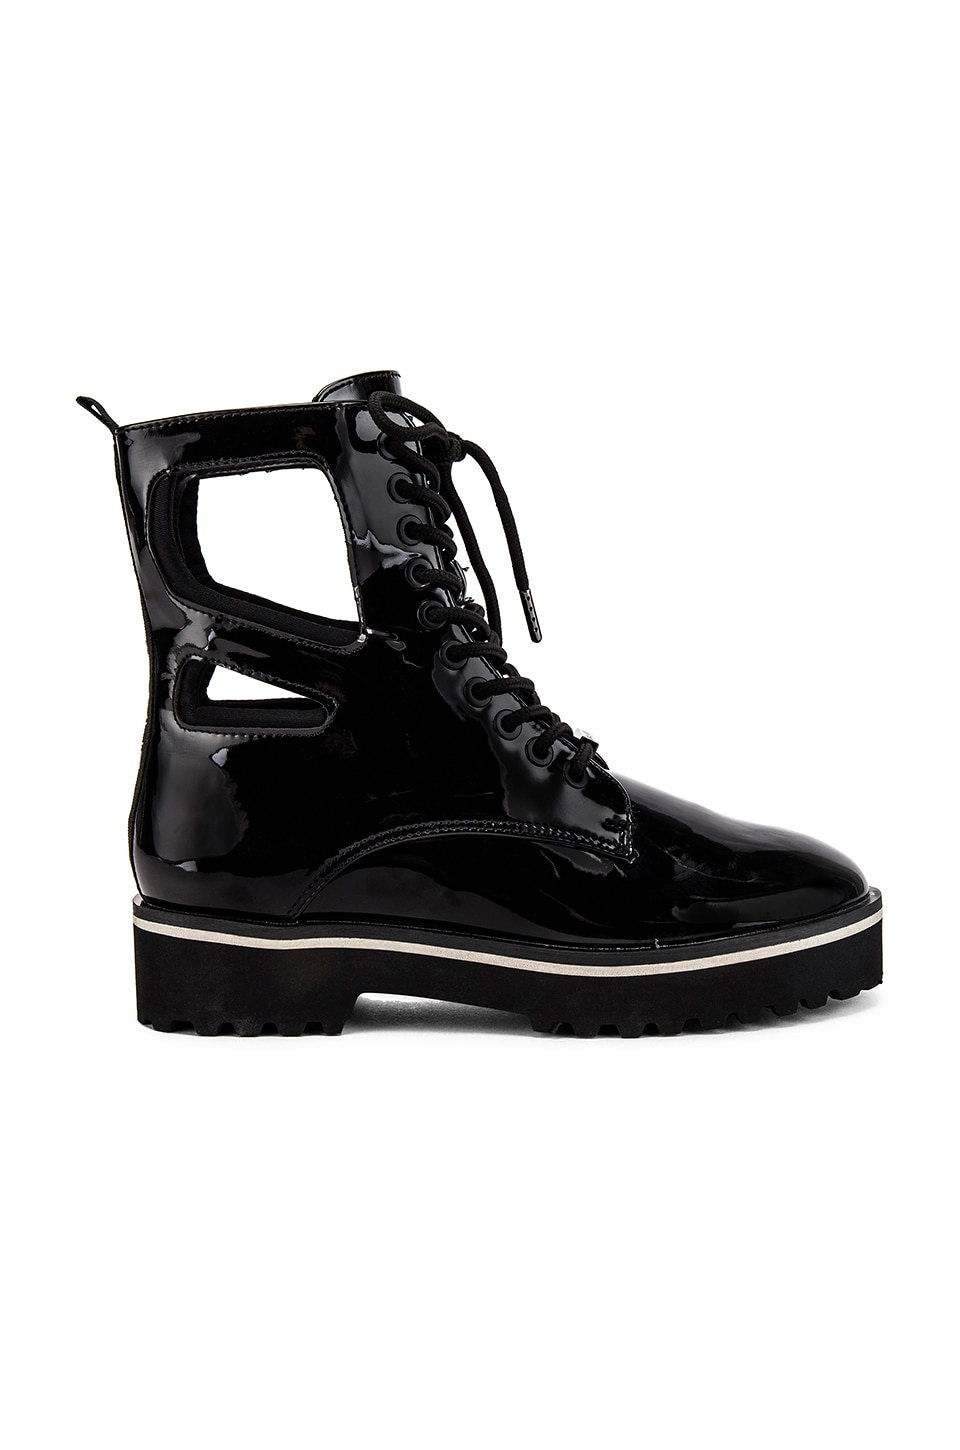 KENDALL + KYLIE Langmore Boot in Black Patent